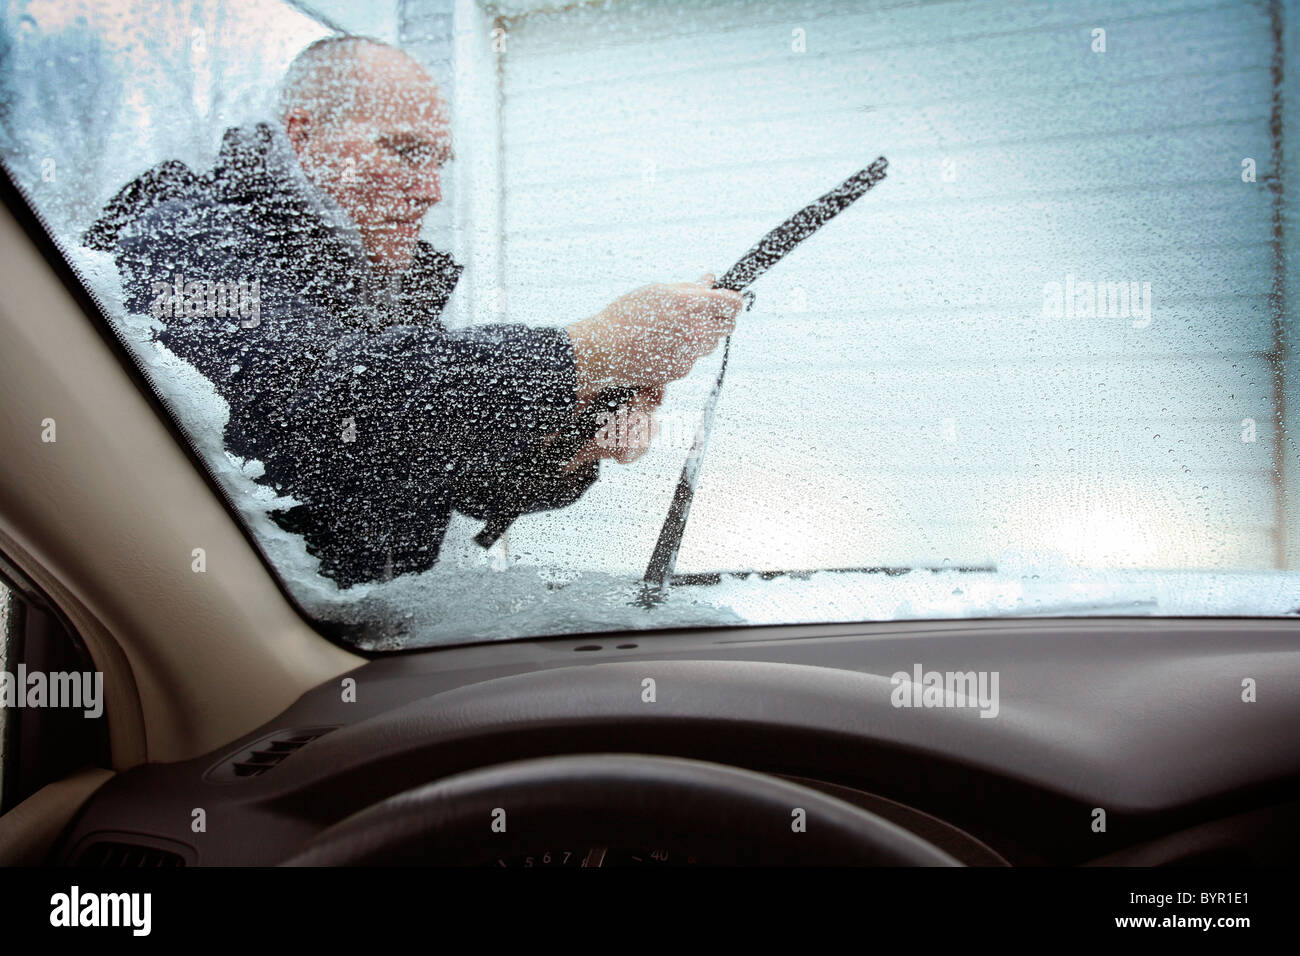 Changing a windshield wiper blade. - Stock Image